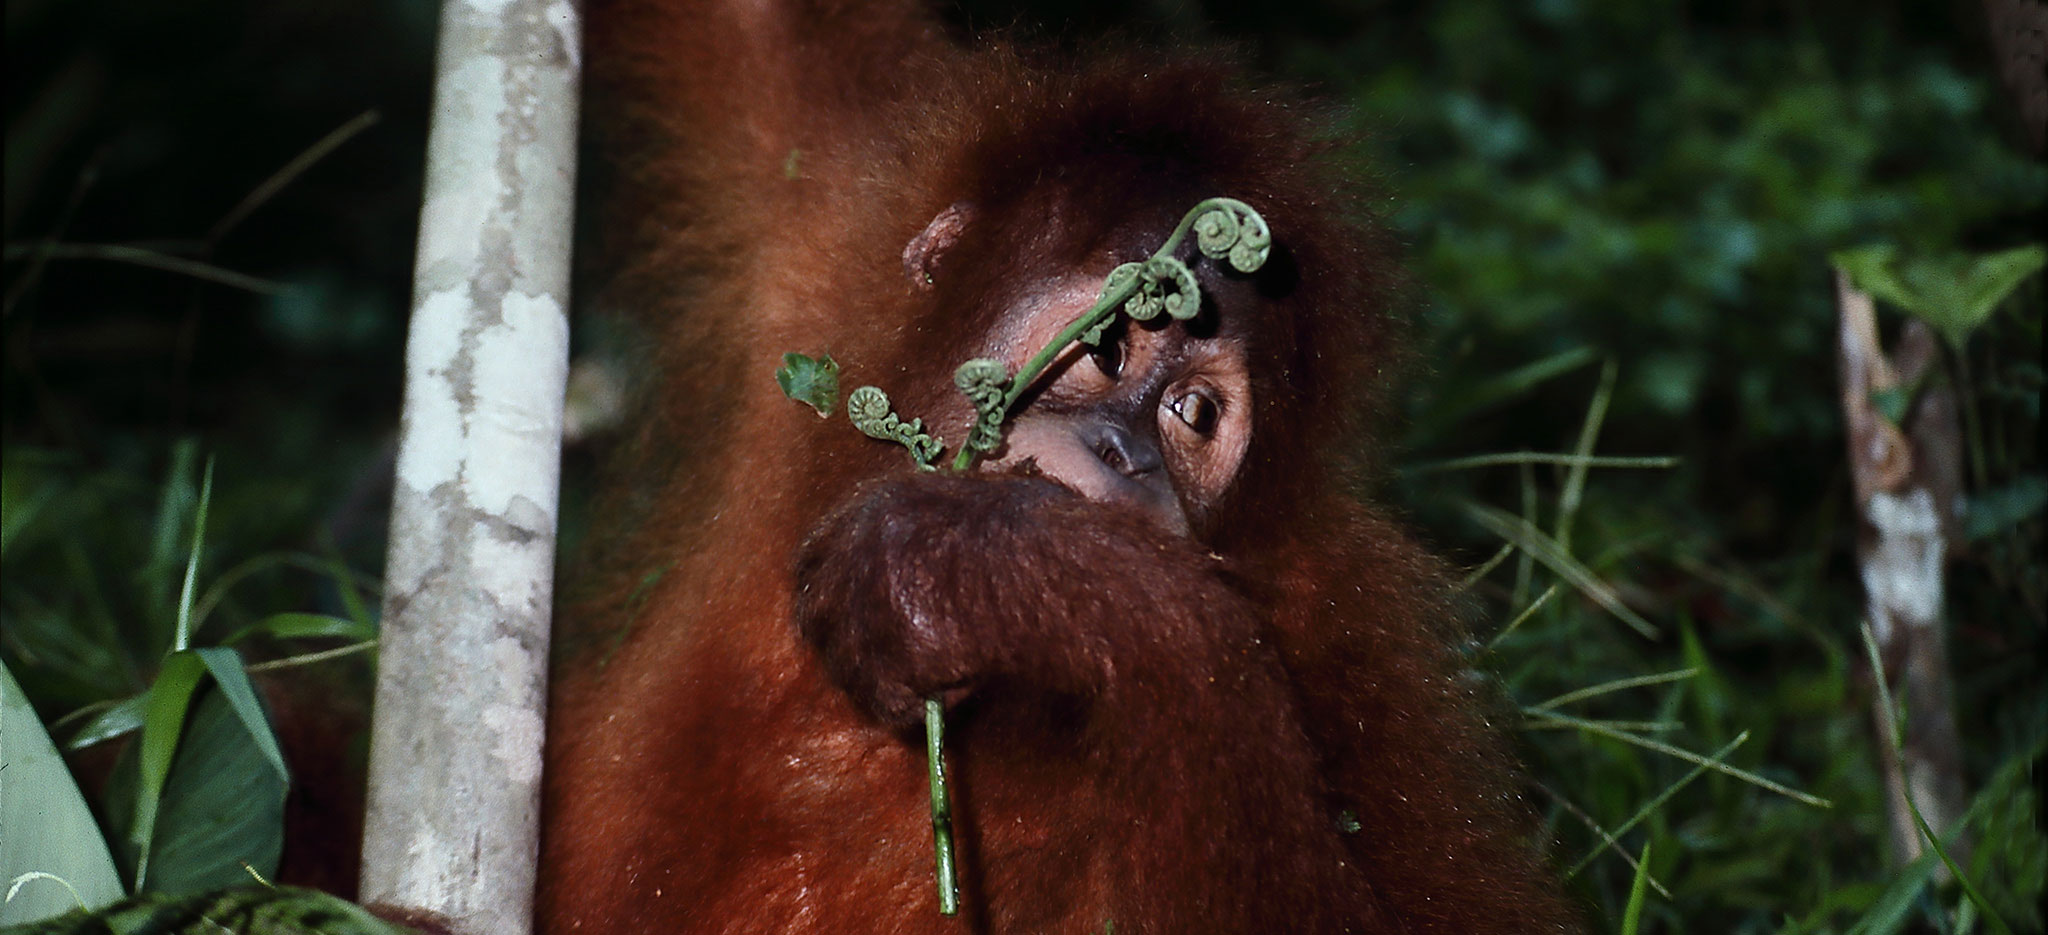 Orangutan in Borneo by Nature Expeditions